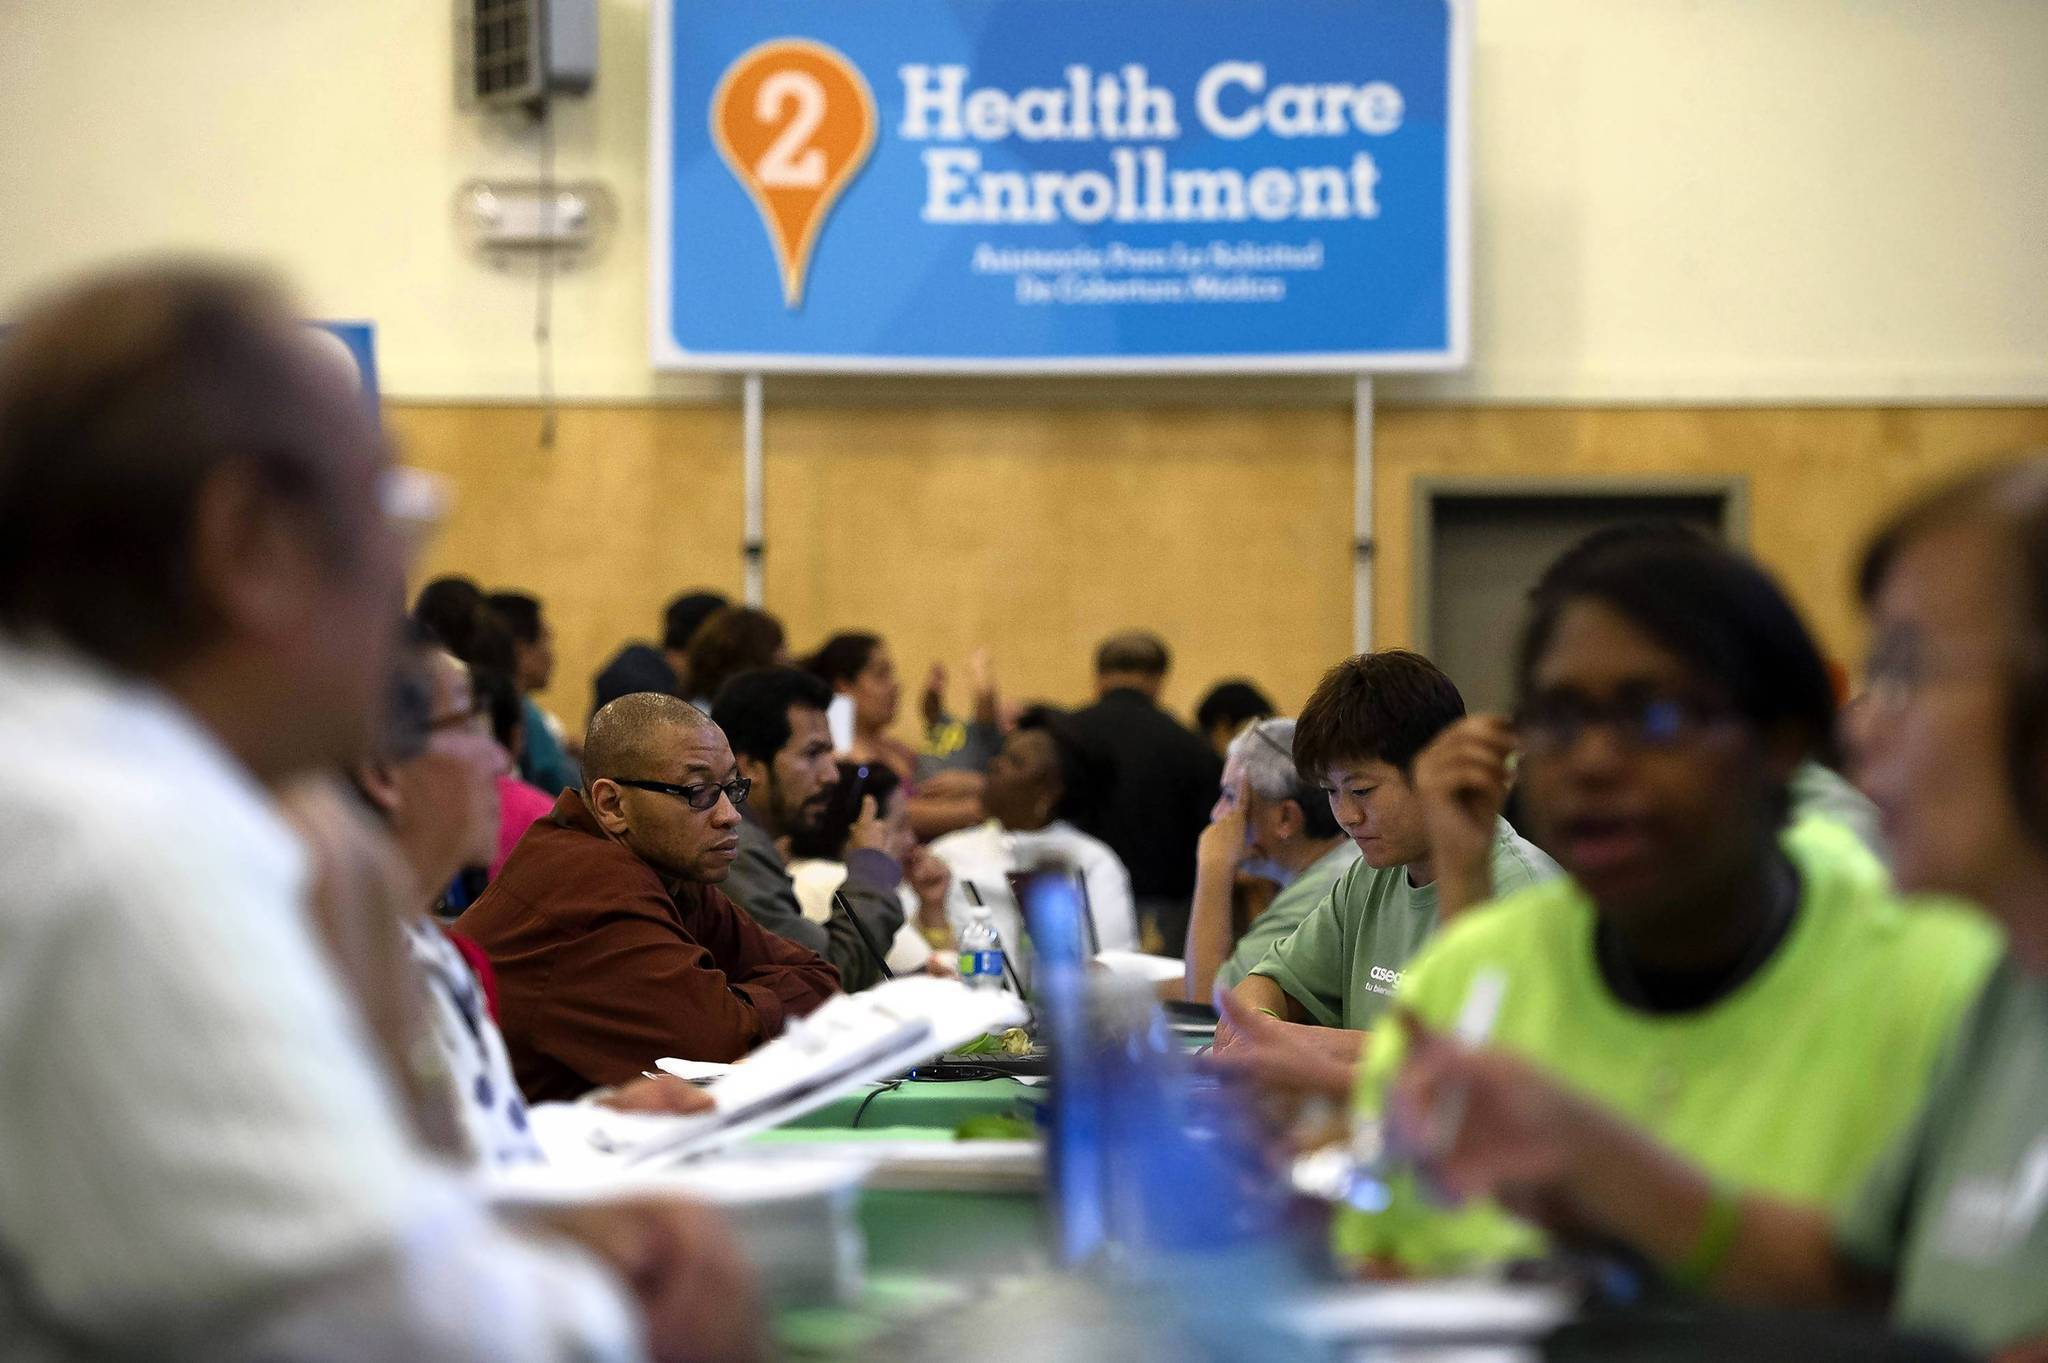 Full steam ahead for Obama healthcare law - Chicago Tribune